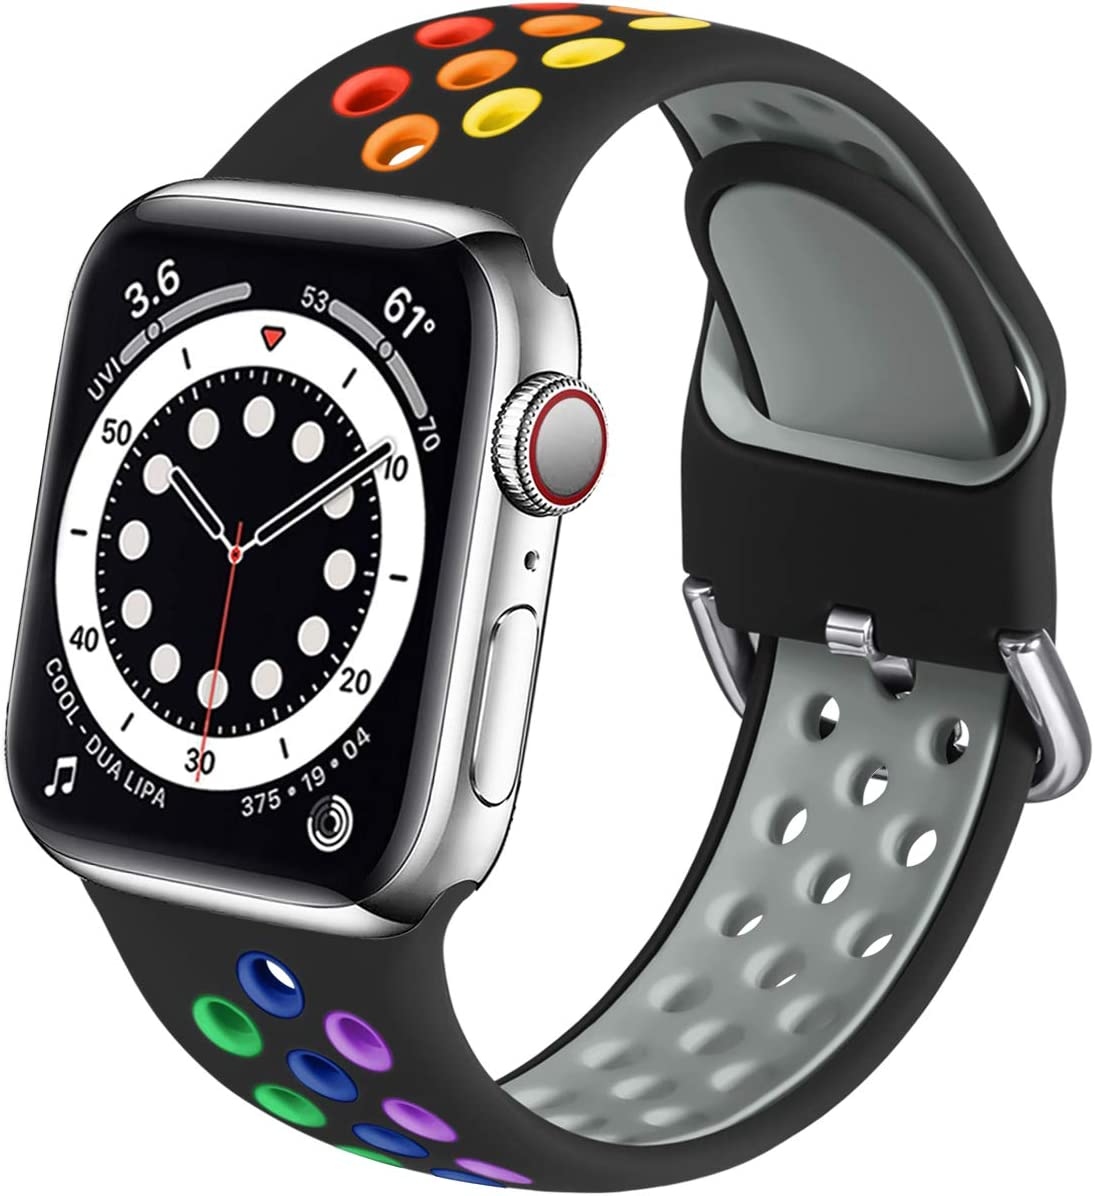 Muranne Compatible with Apple Watch Bands 44mm 42mm iWatch SE & Series 6 & Series 5 4 3 2 1 for Women Men, Black/Rainbow, M/L